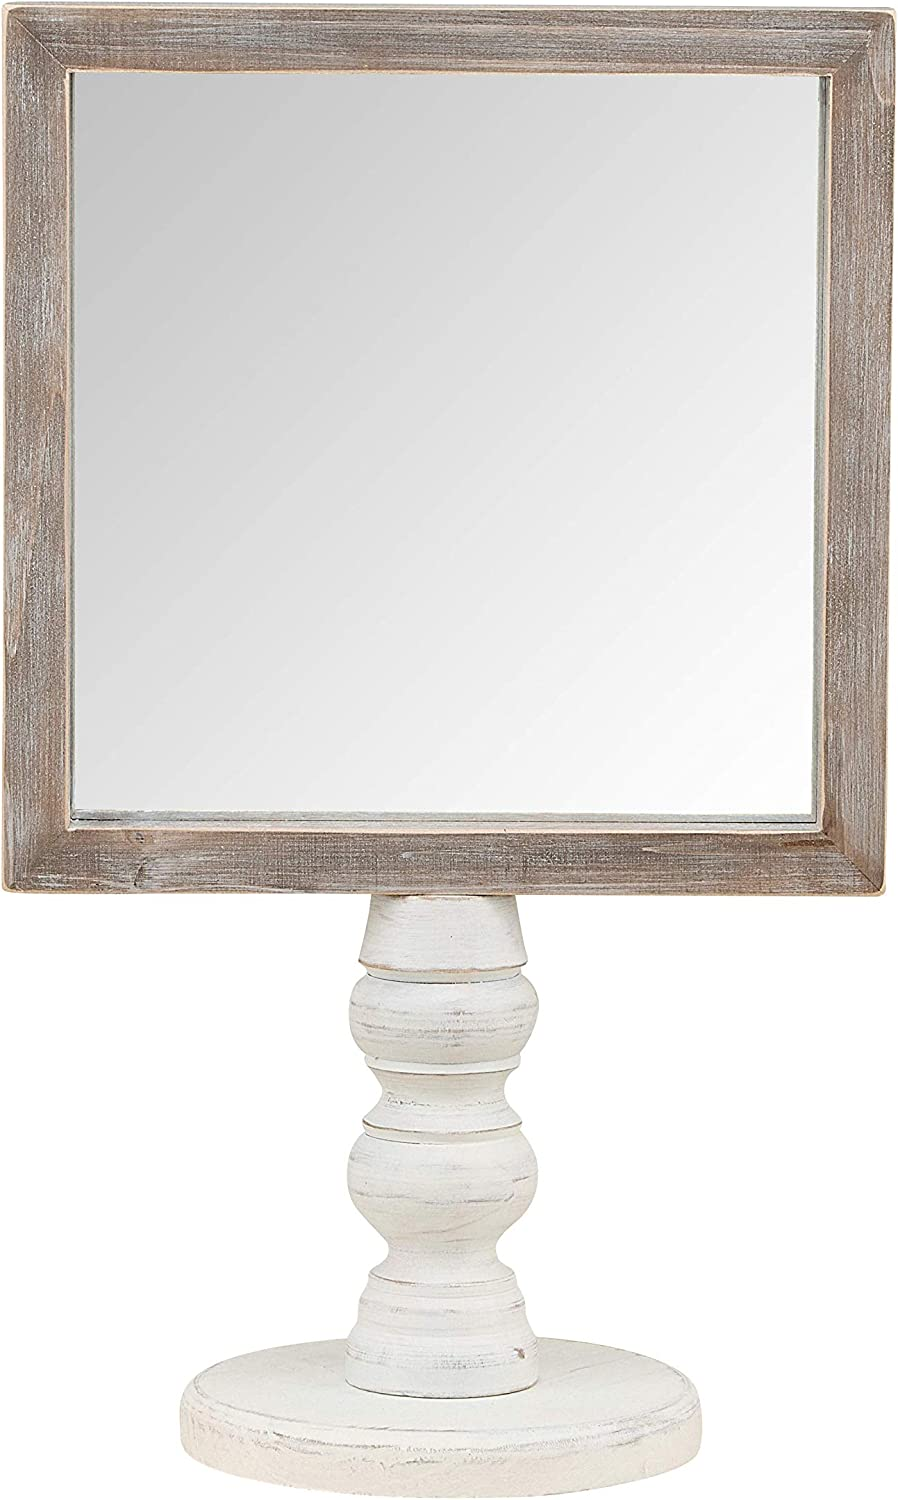 Glory Haus Affirmation Mirror Wood Shelf or Table Display Stand Multi